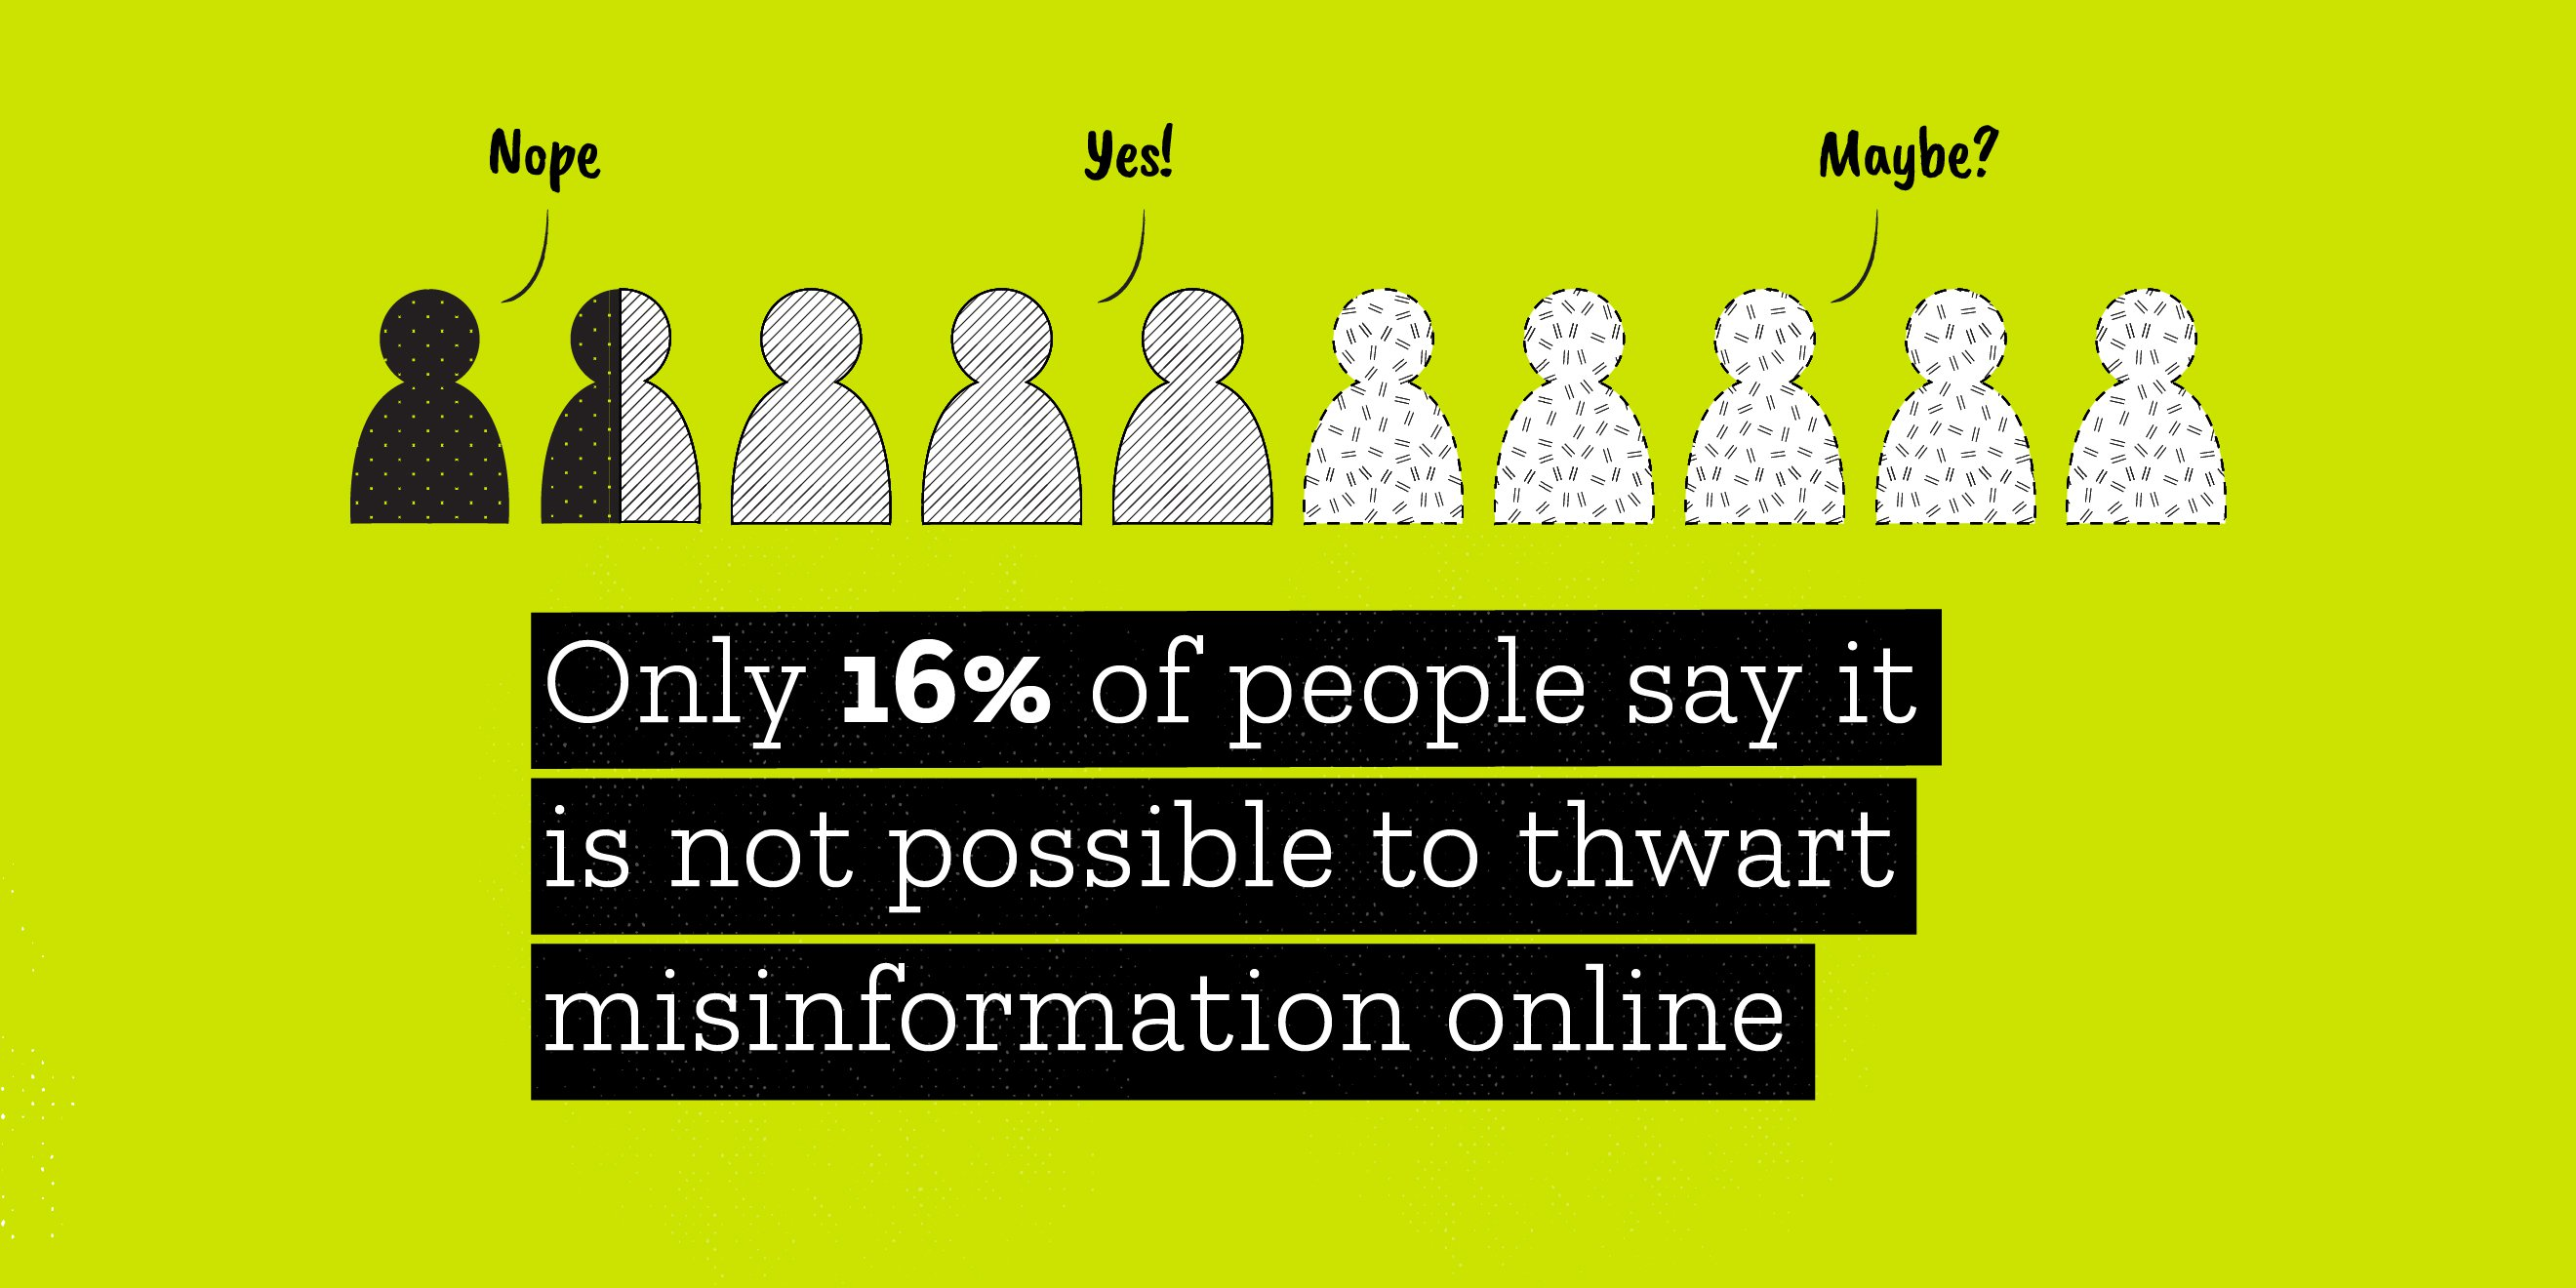 Only 16% of respondents say it is not possible to thwart misinformation online.  34% say yes, we can thwart misinformation.